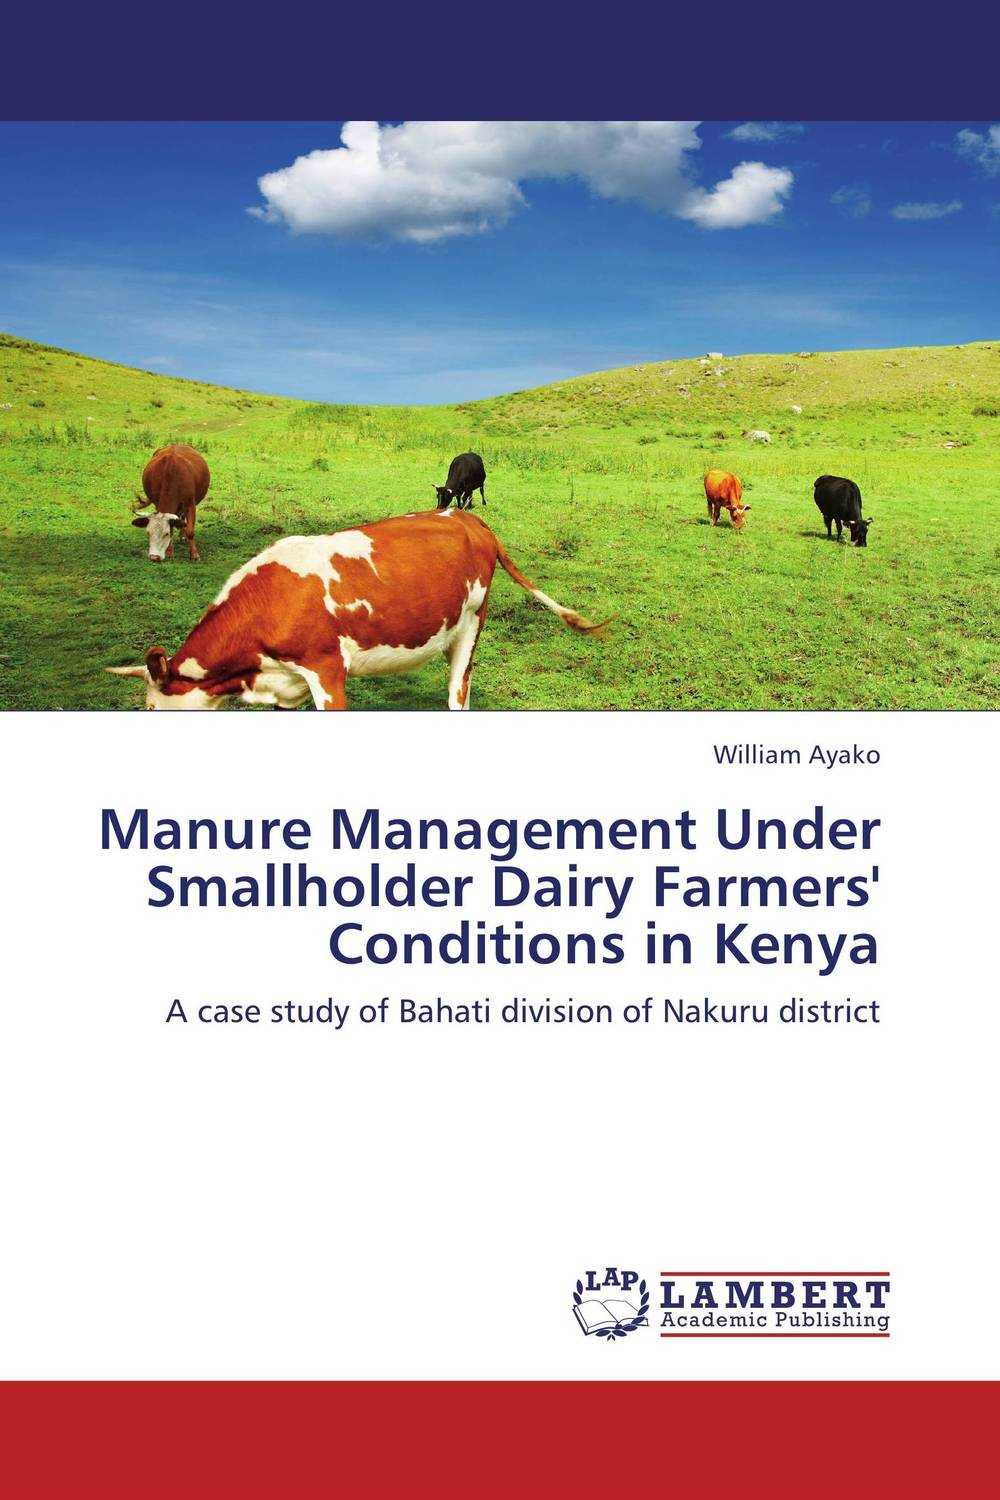 Manure Management Under Smallholder Dairy Farmers' Conditions in Kenya claw disorders in dairy cows under smallholder zero grazing units